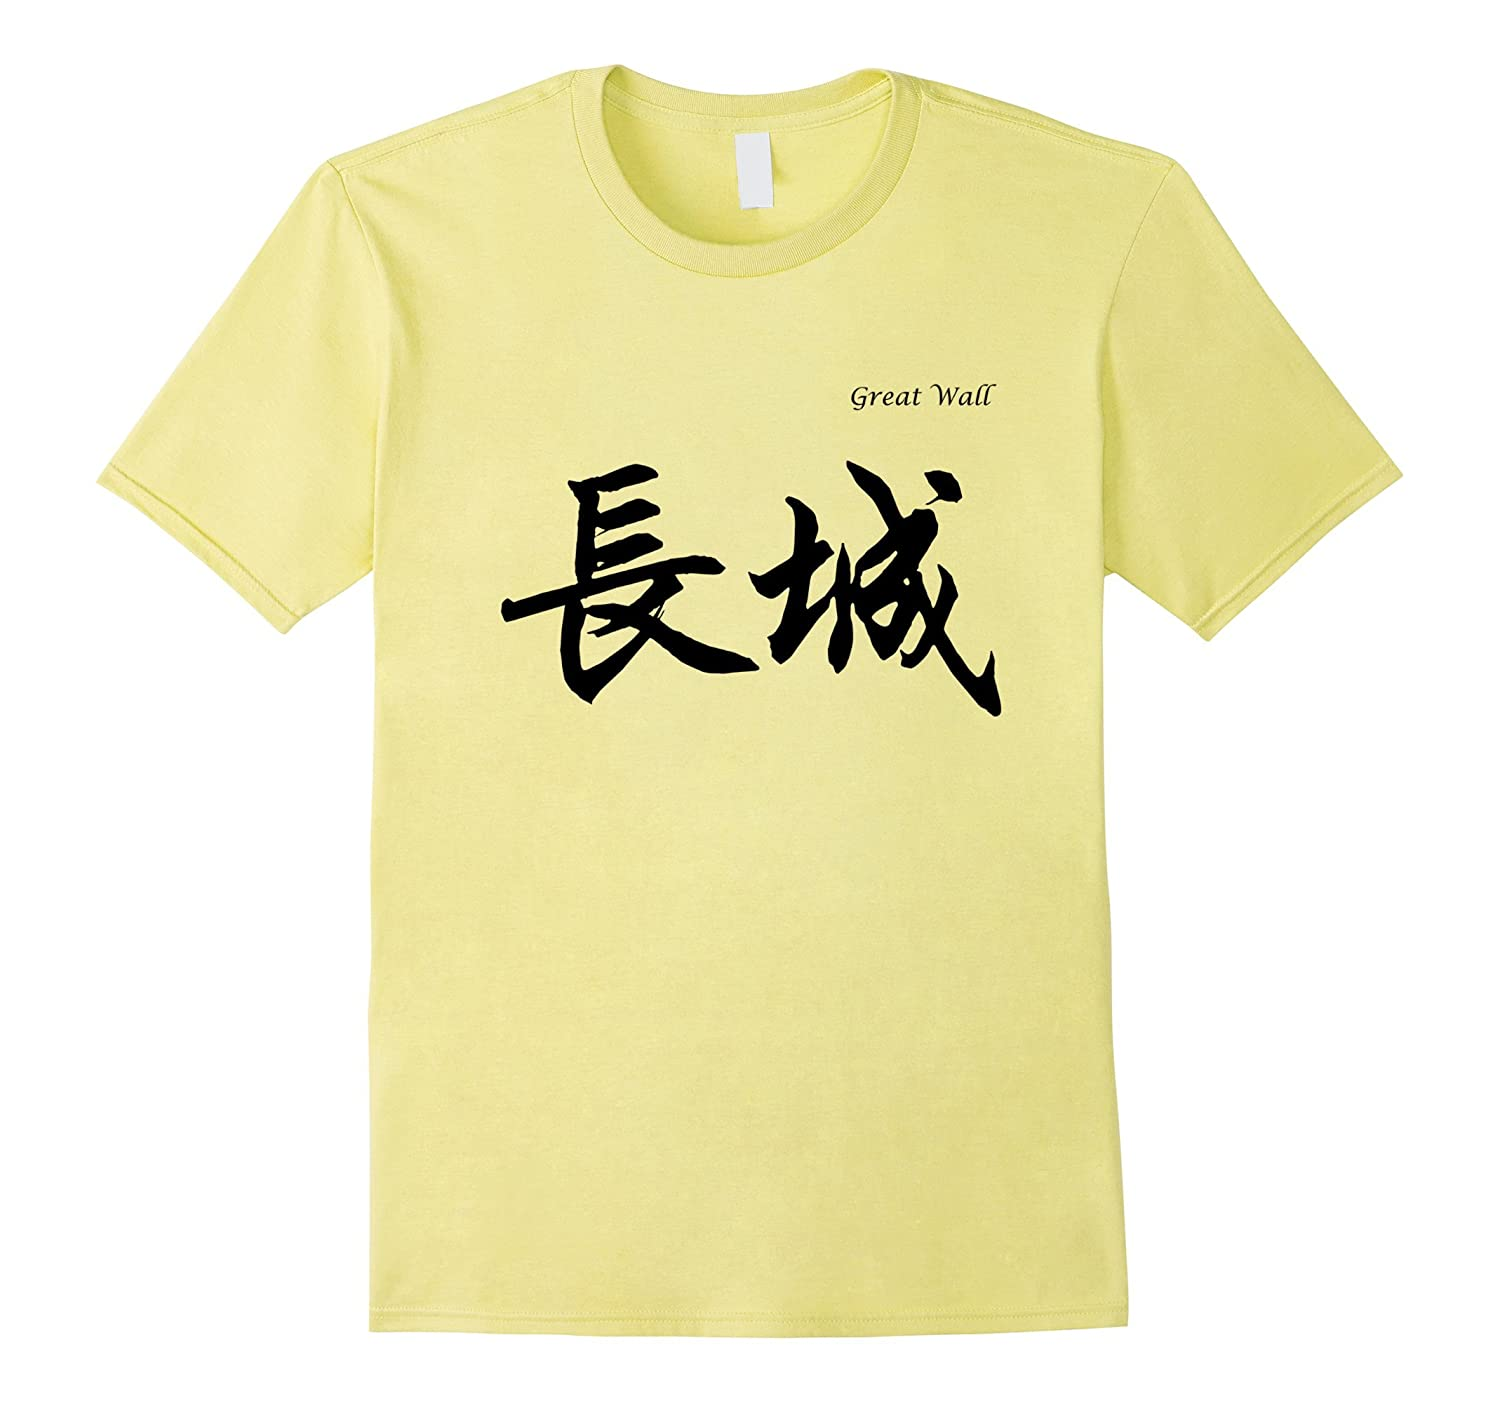 9a363737ee Great Wall in Chinese Characters Calligraphy T-Shirt-ah my shirt one gift